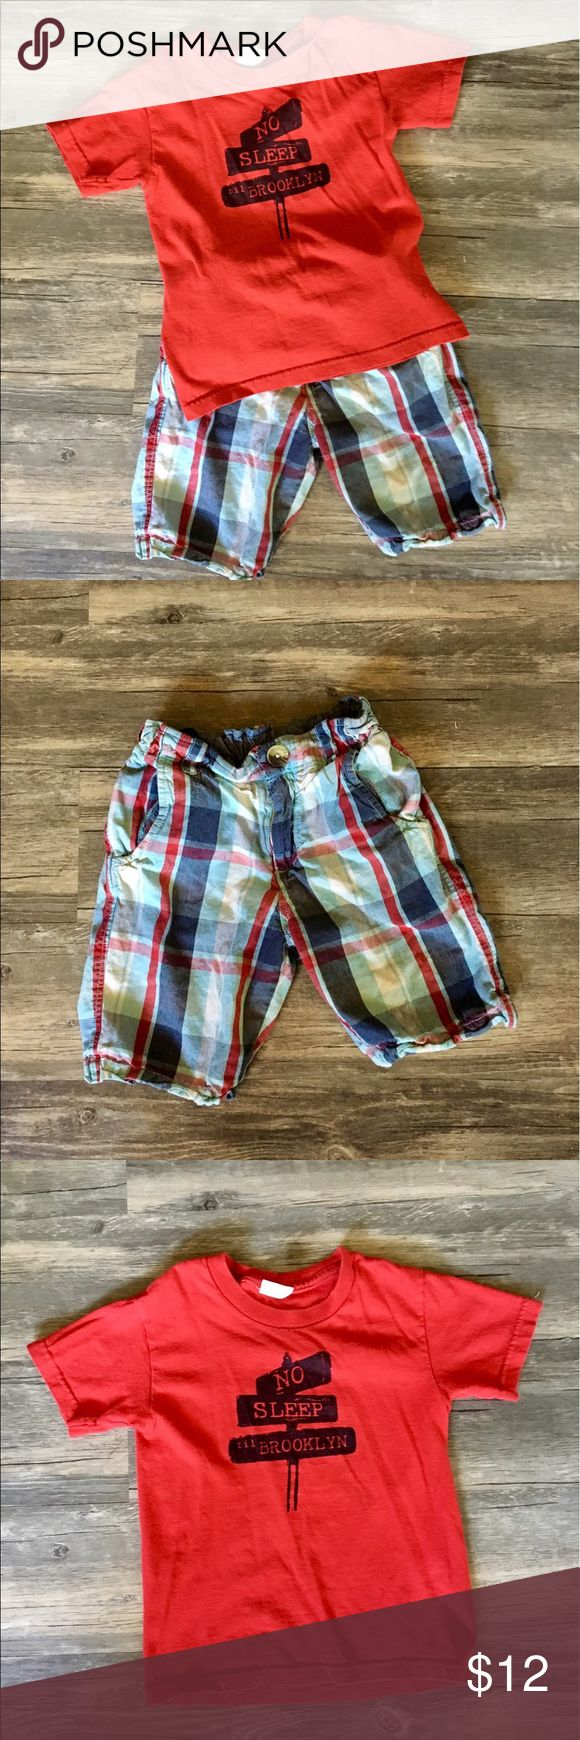 Boy's Peek Outfit The coolest boy's outfit! Includes a red tshirt (size youth small, from Etsy) and Peek brand plaid shorts (size 8 but run very small, more like a six). Bundle 2+ items and save 20%! Peek Matching Sets